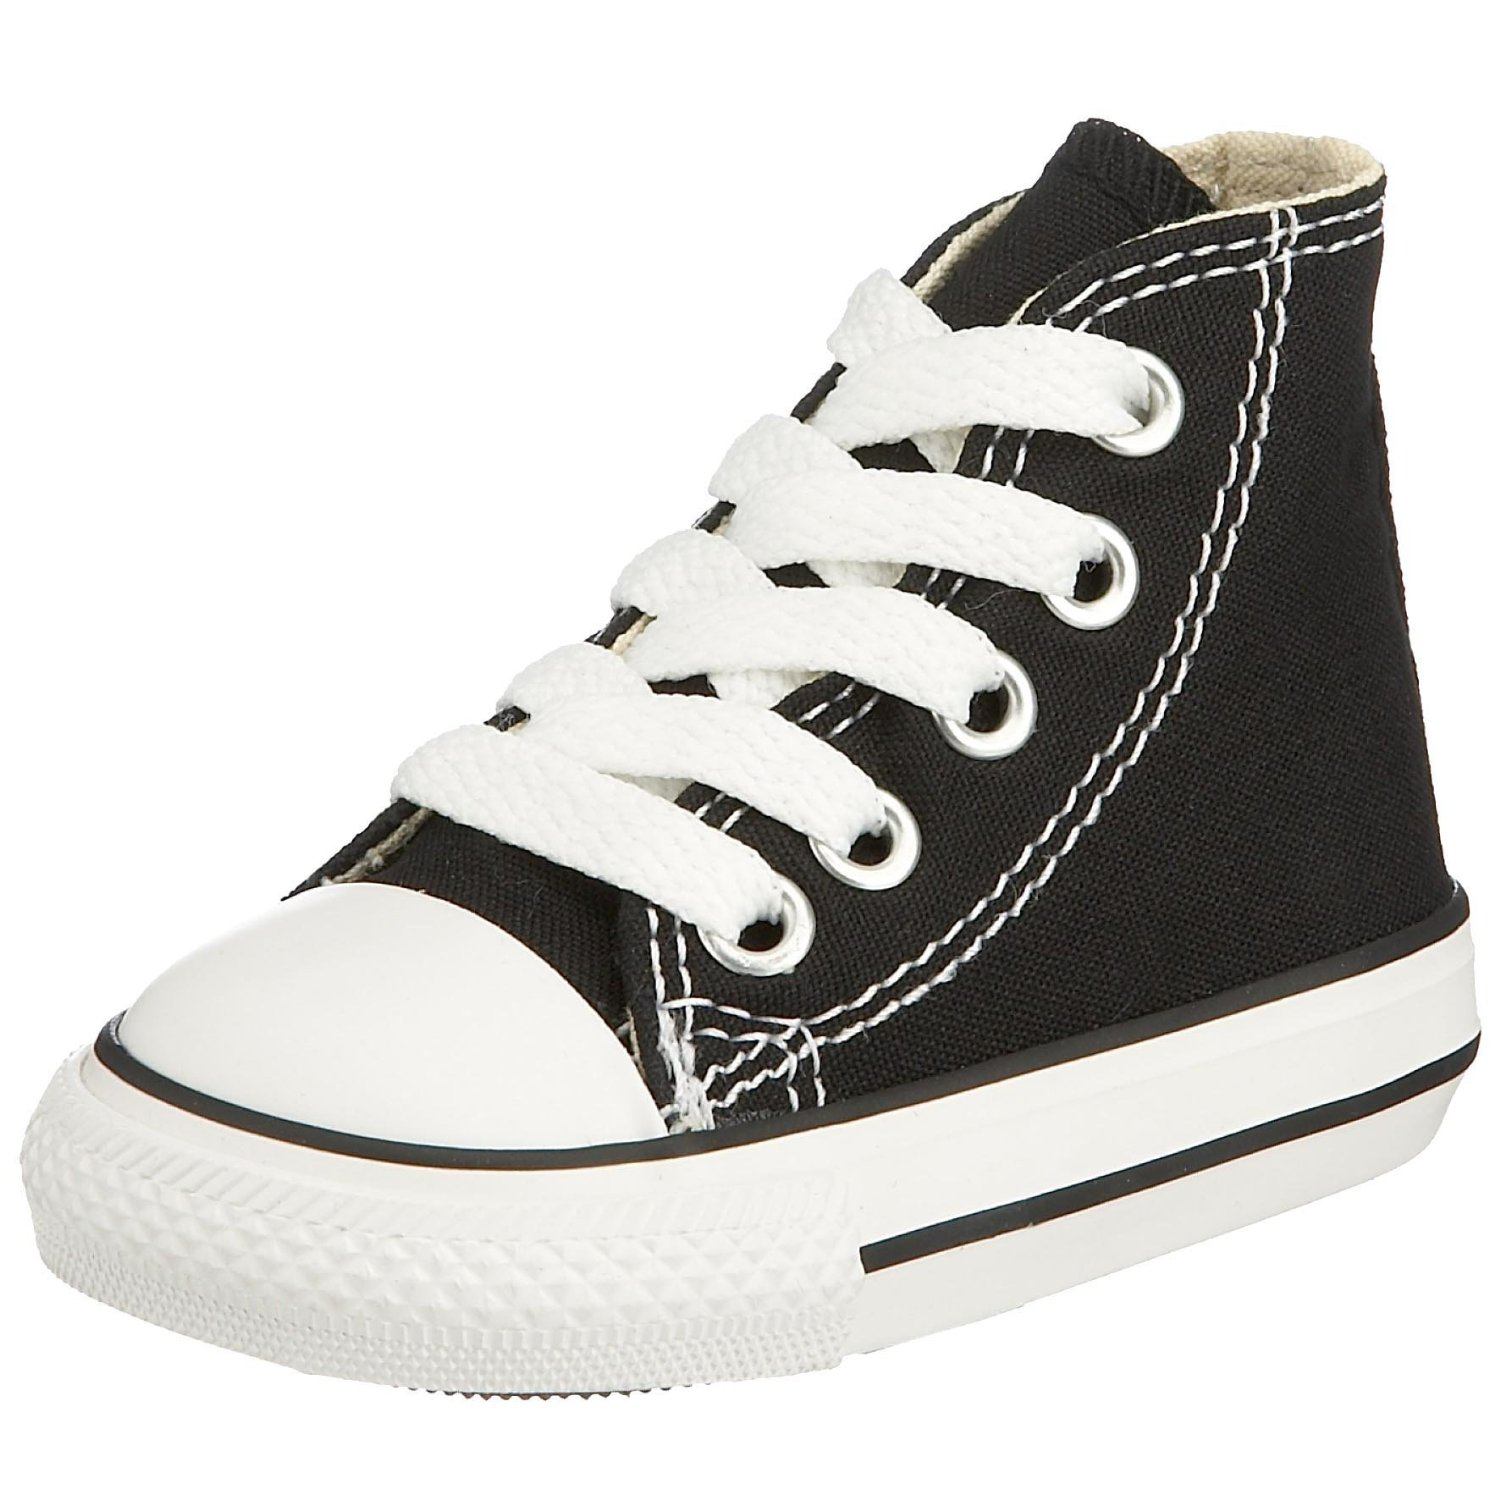 b44f55848742 Kids All Star Hi Top Shoes - Chuck Taylor Converse Trainers for Children